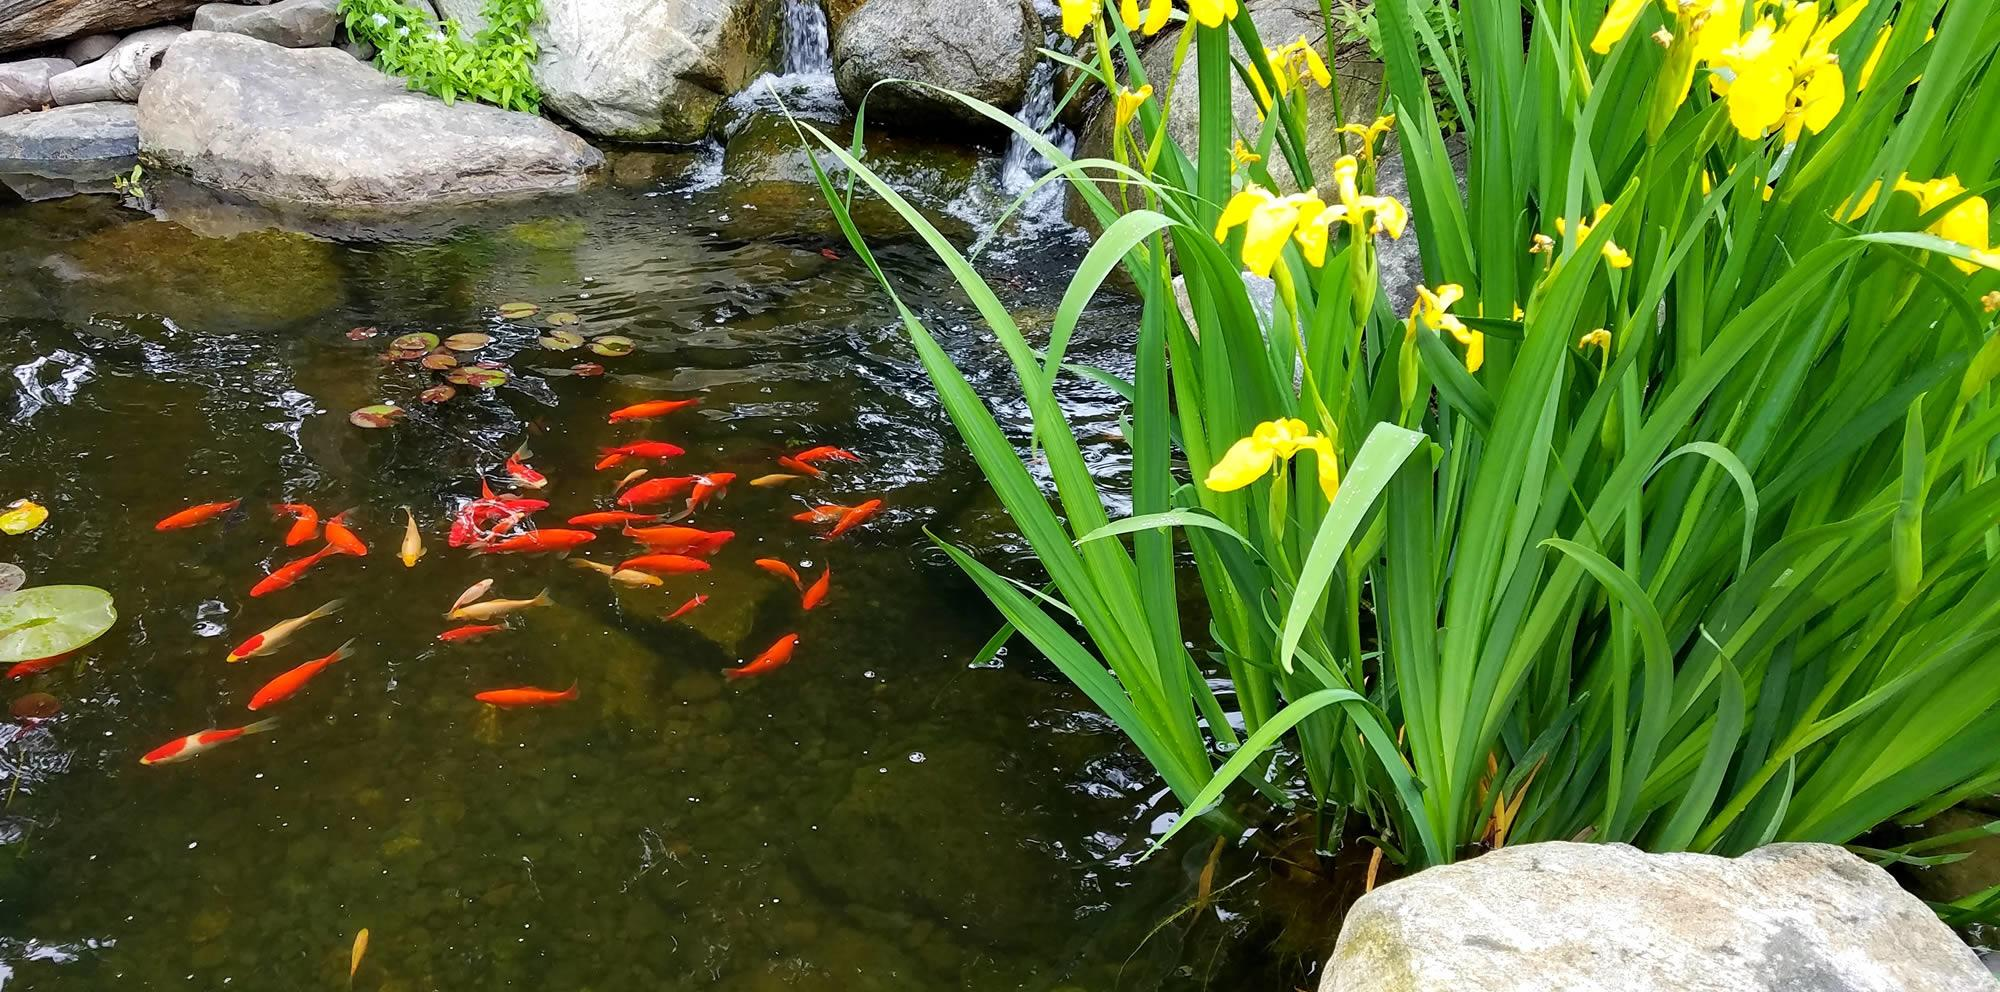 <h2>Garden Ponds</h2><p>Easy Garden Watering Ponds and Pools are a fantastic addition to any garden, Find everything you need to create your perfect pond or garden water feature Water Gardening Made Easy. ...</p>